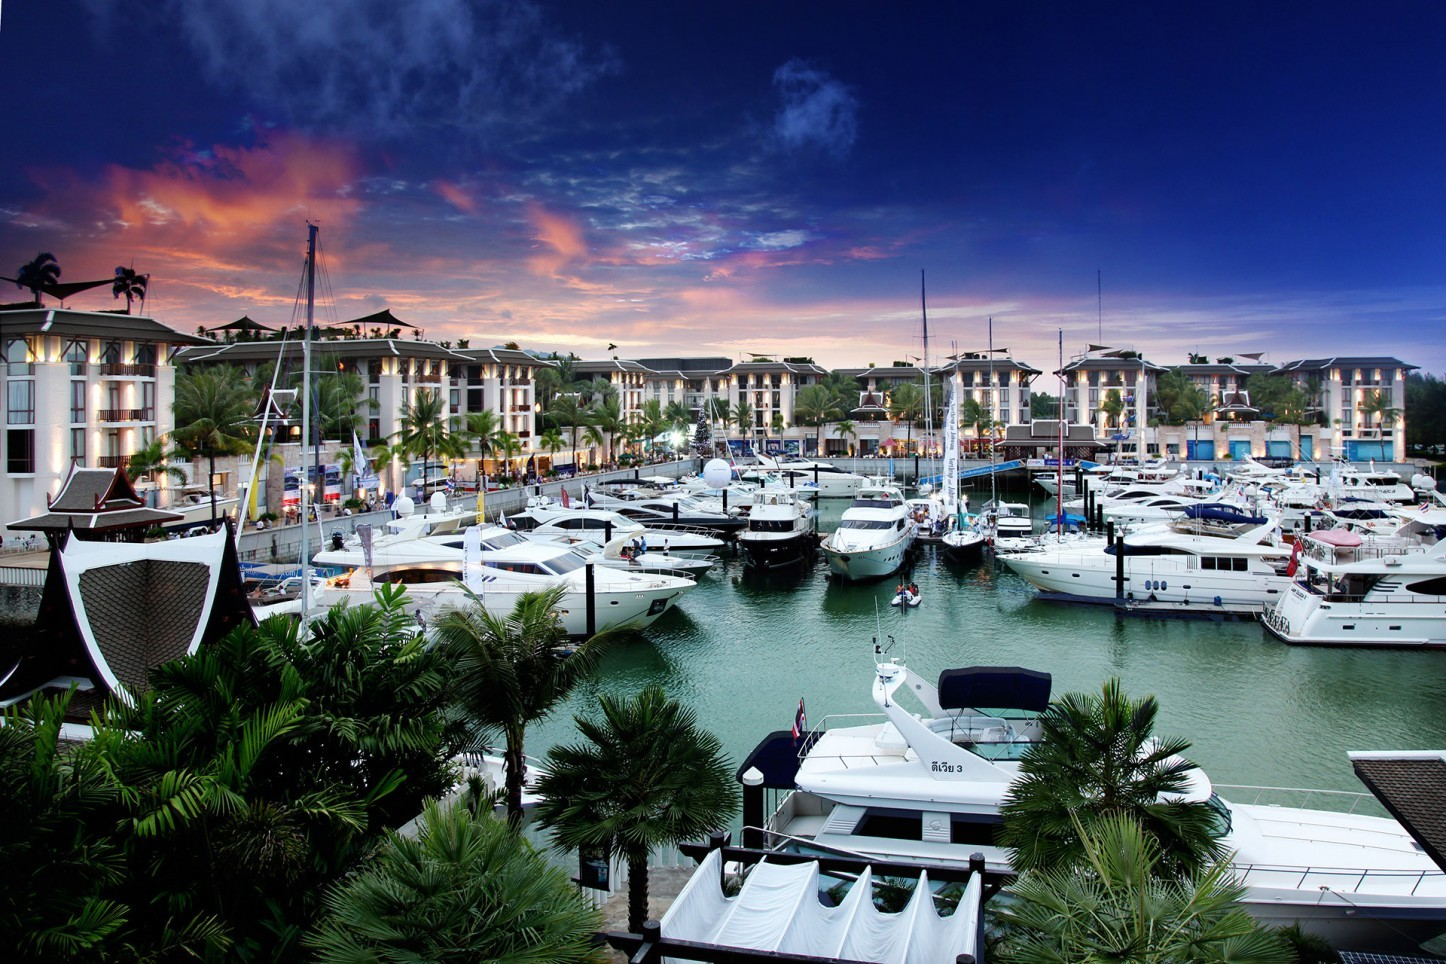 Royal Phuket Marina | Kata Rocks Resort Phuket Thailand